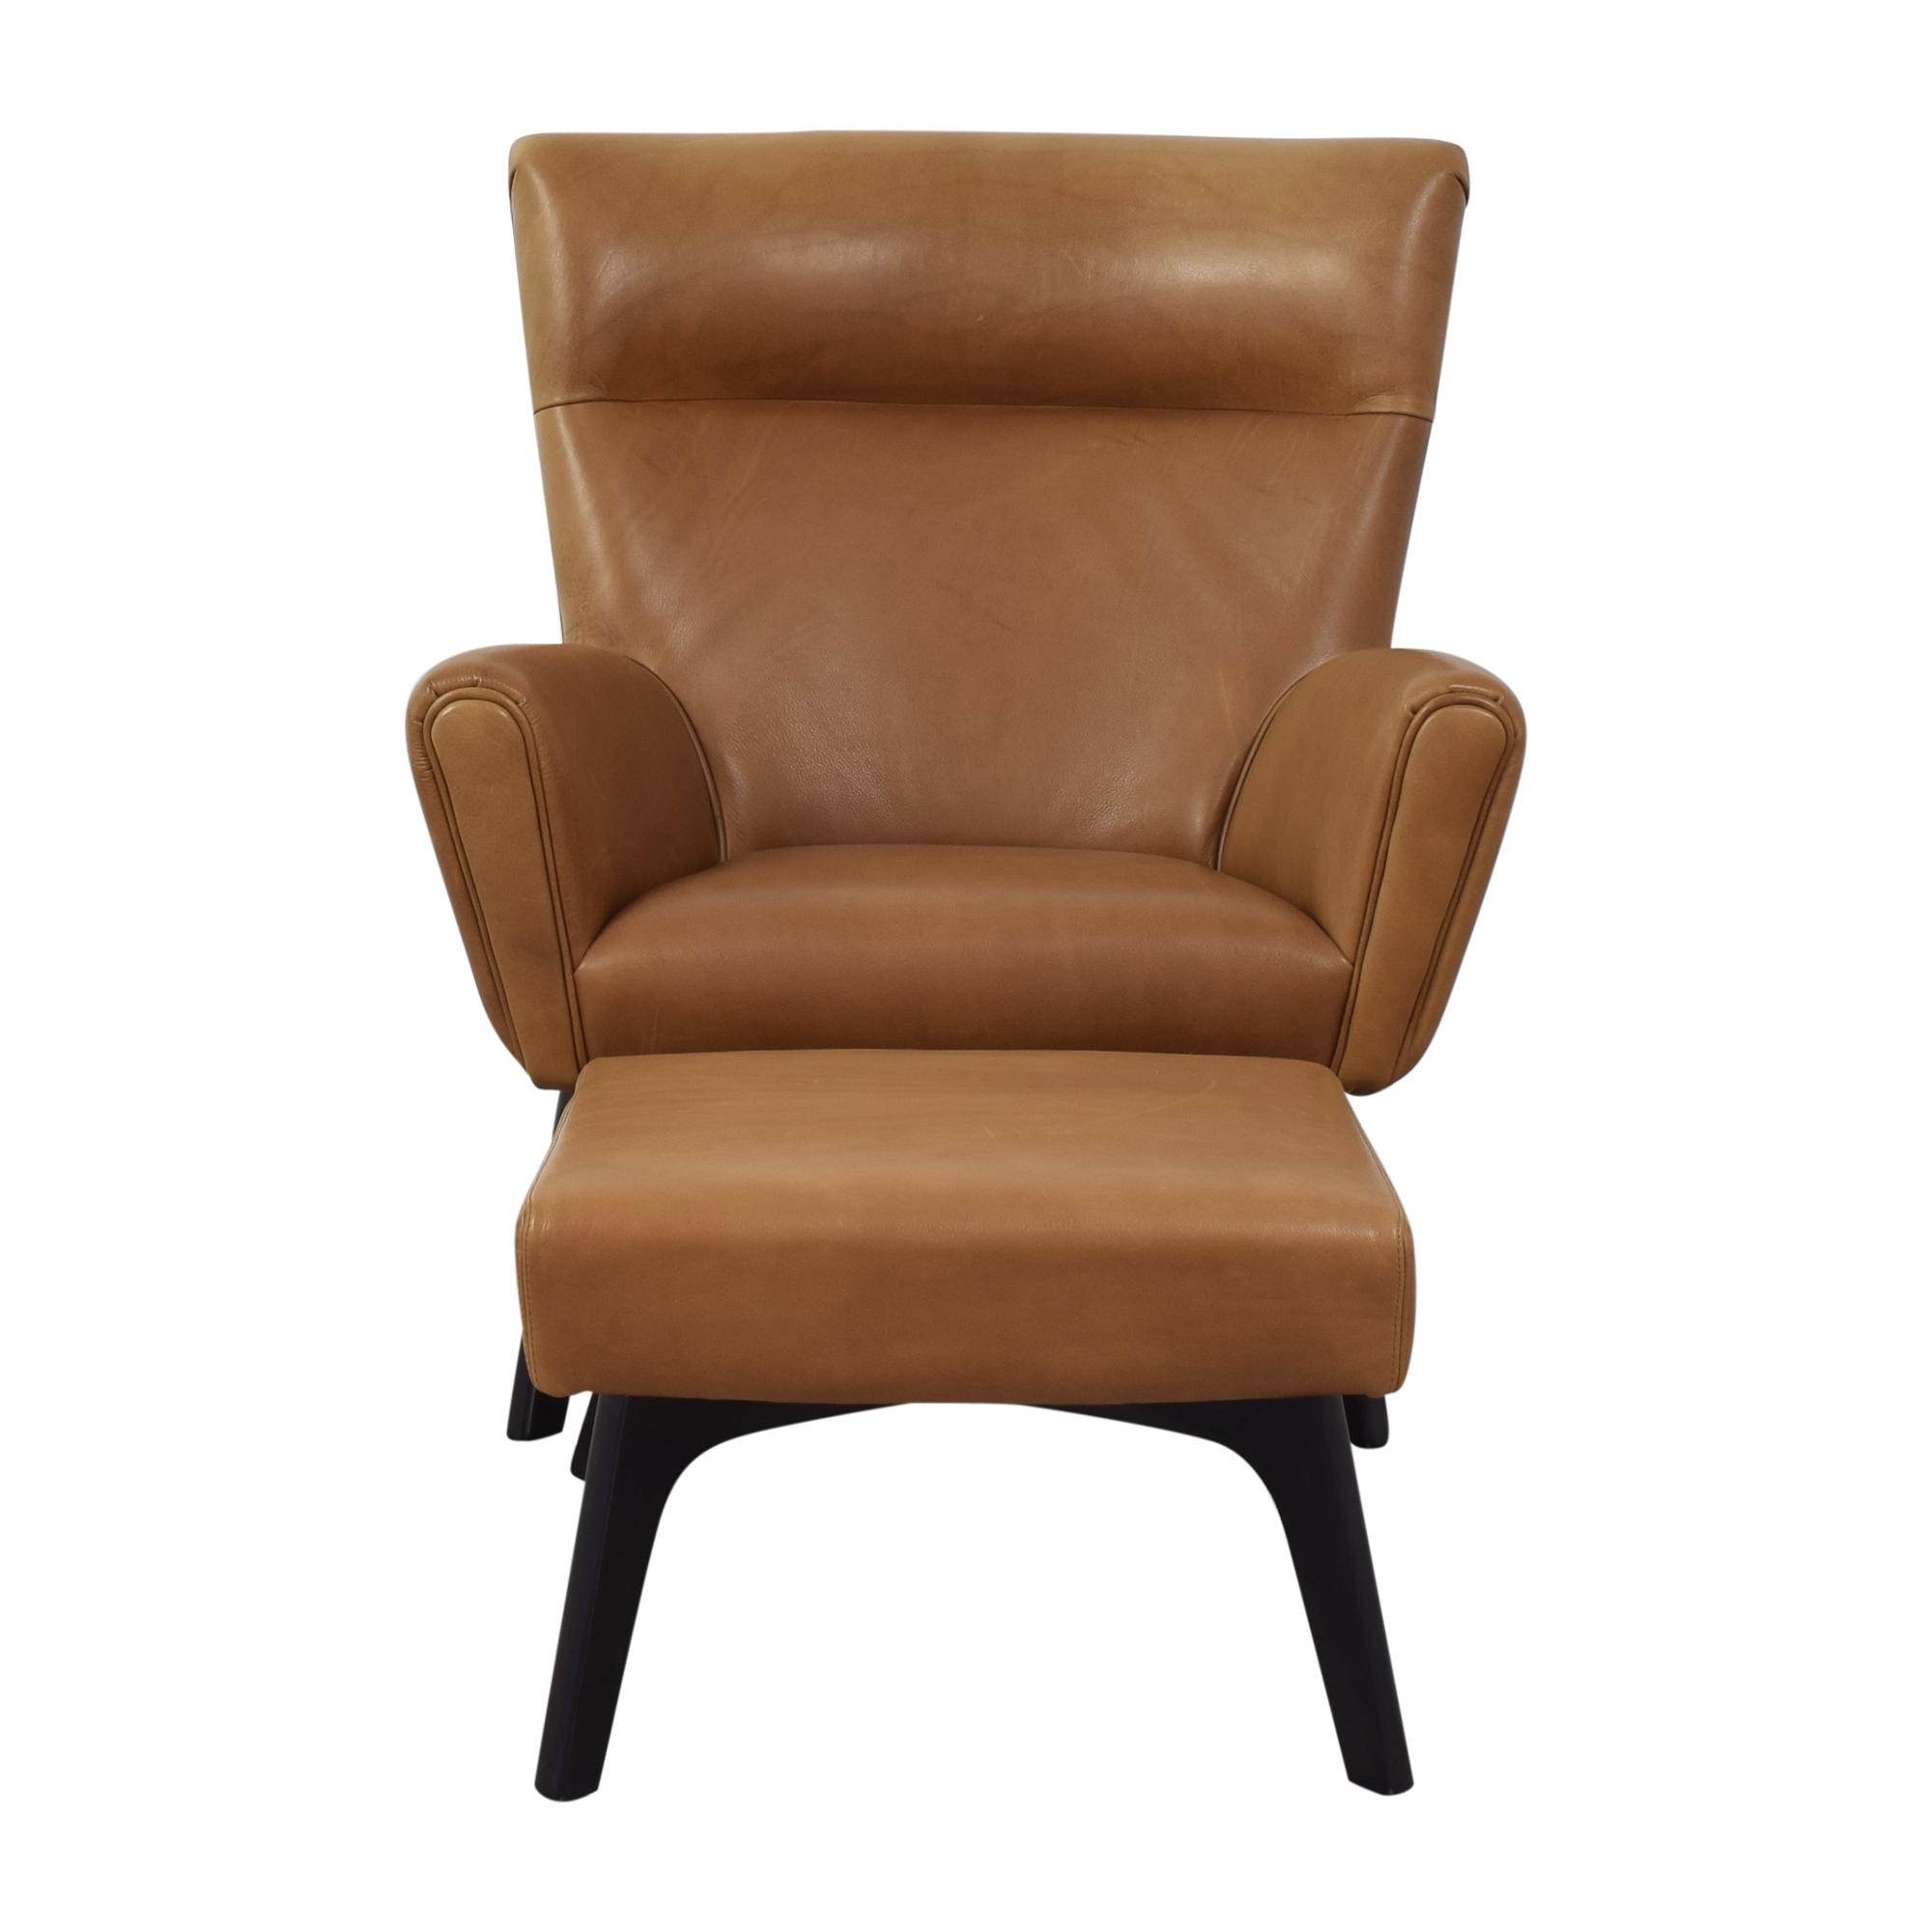 Room & Board Room & Board Boden Chair and Ottoman used